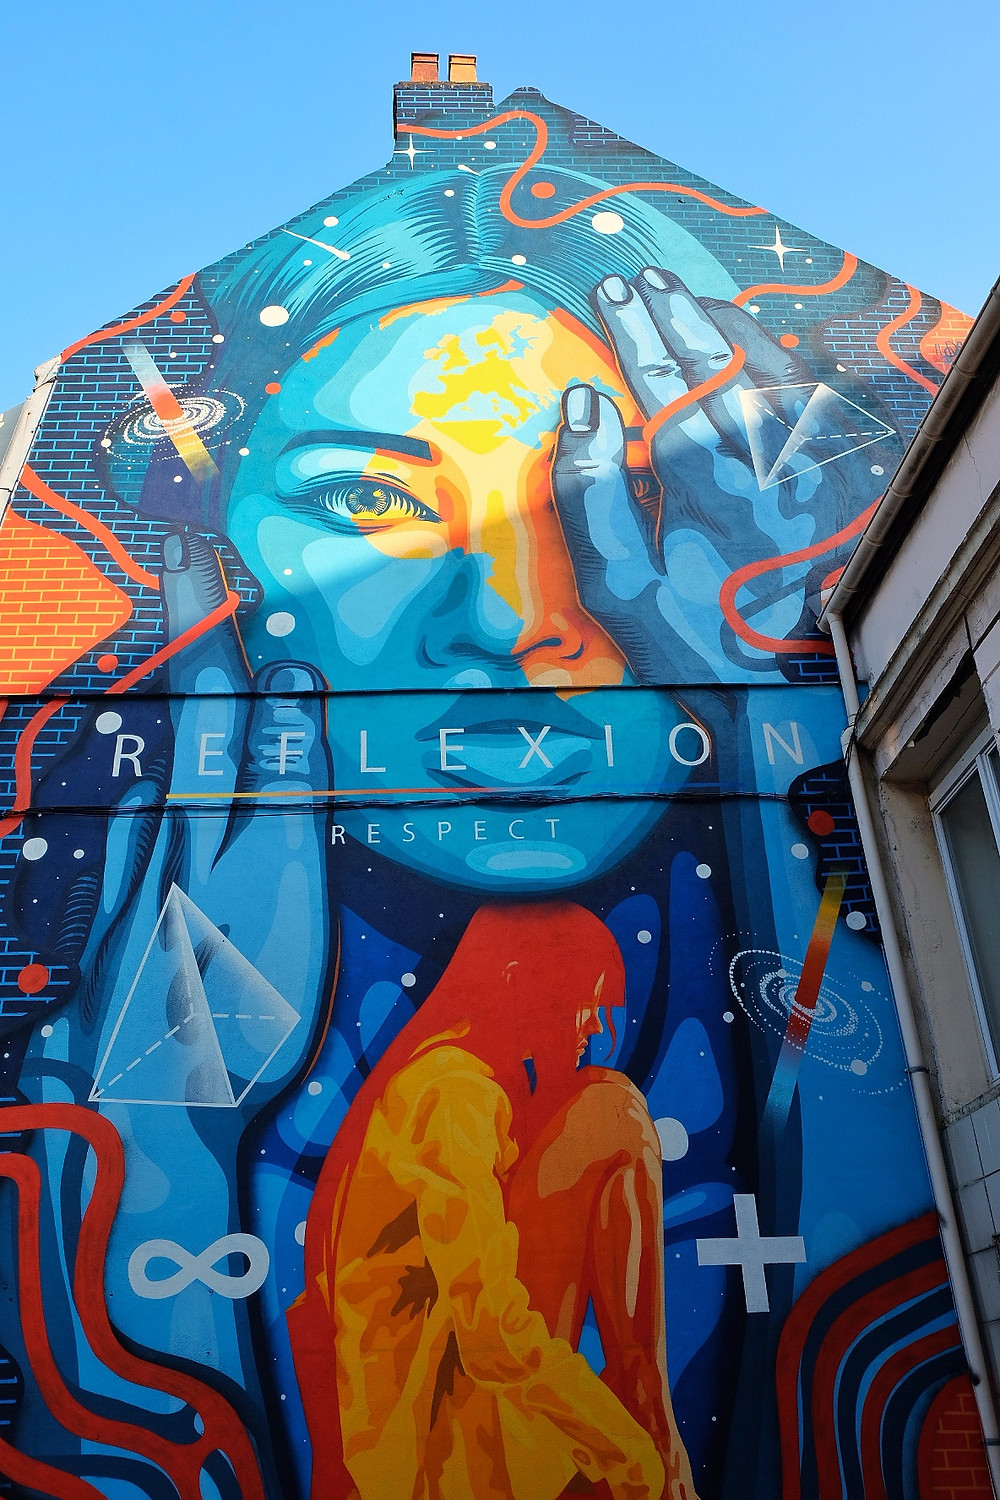 Street Art by Dourone in Boulogne-sur-Mer, France